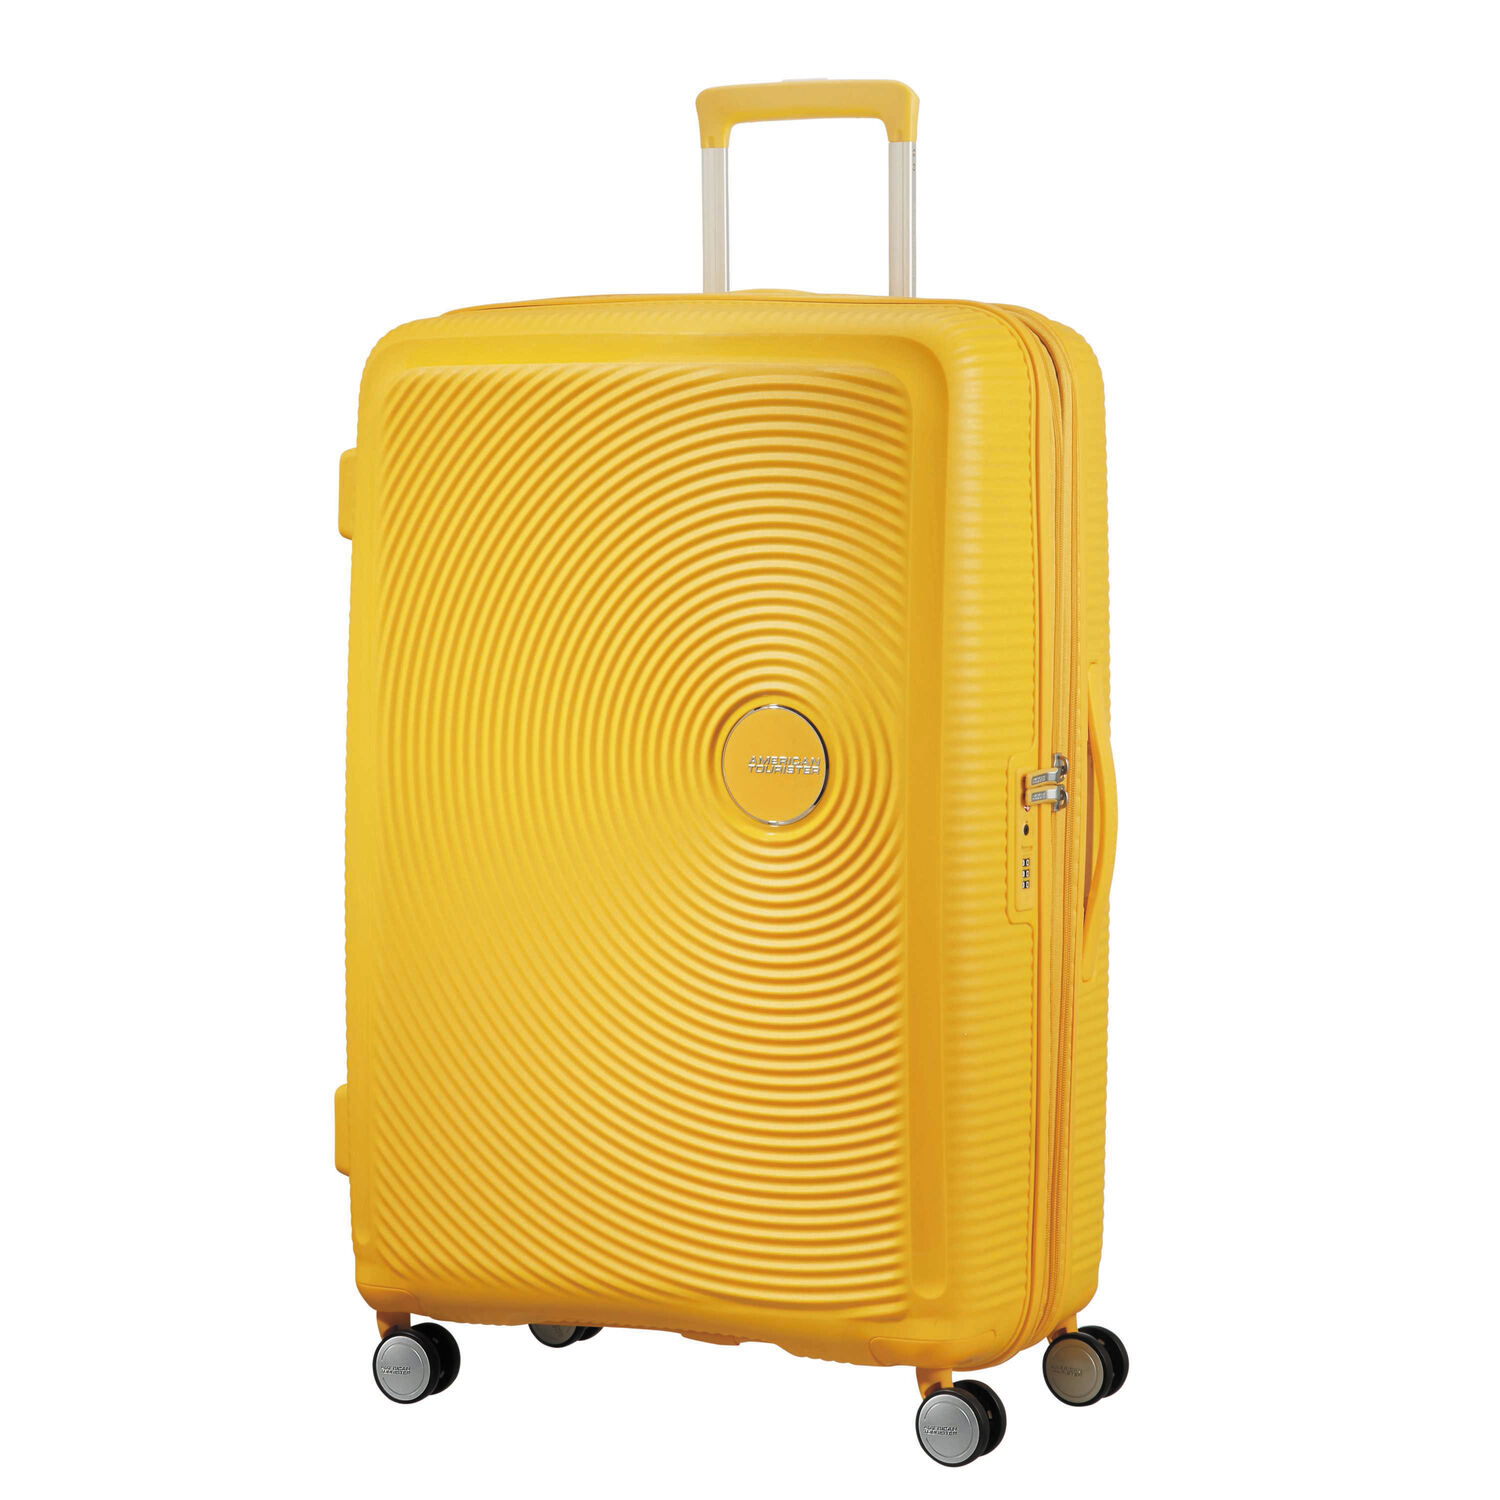 American Tourister Curio 29 Quot Spinner